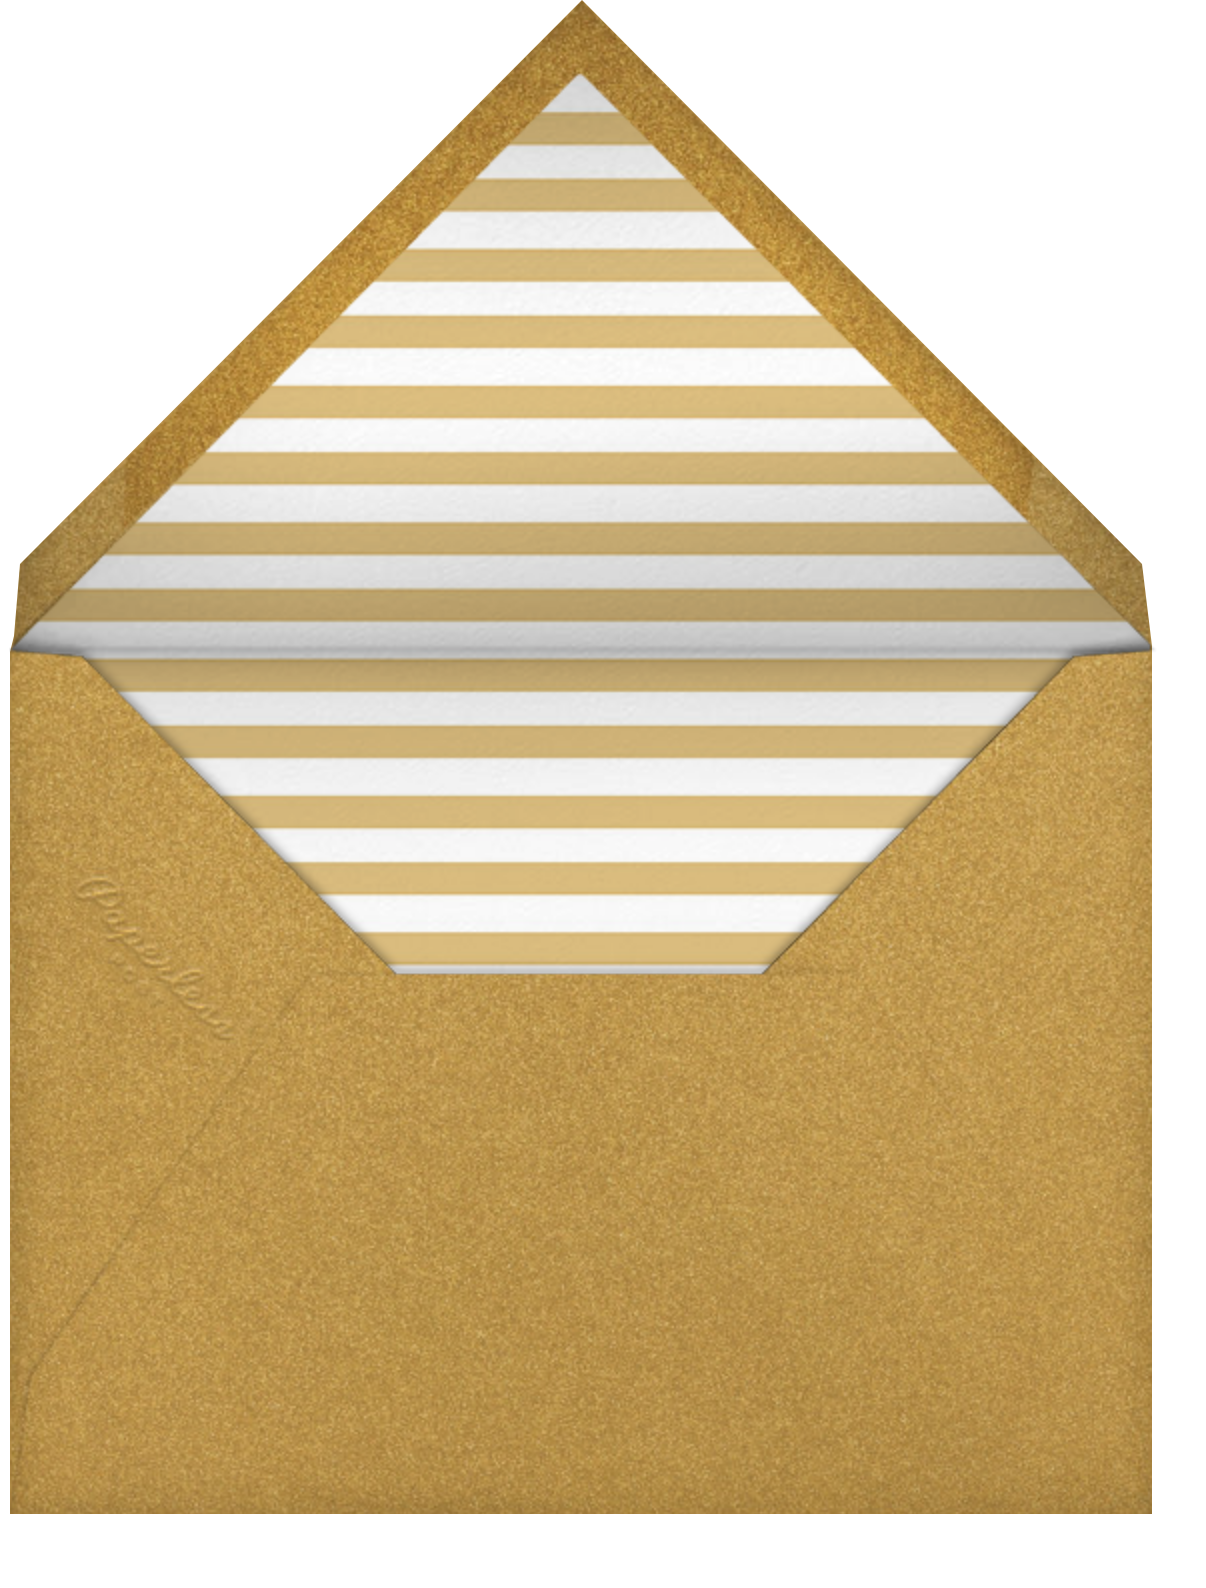 Smash Cut - Paperless Post - Engagement party - envelope back